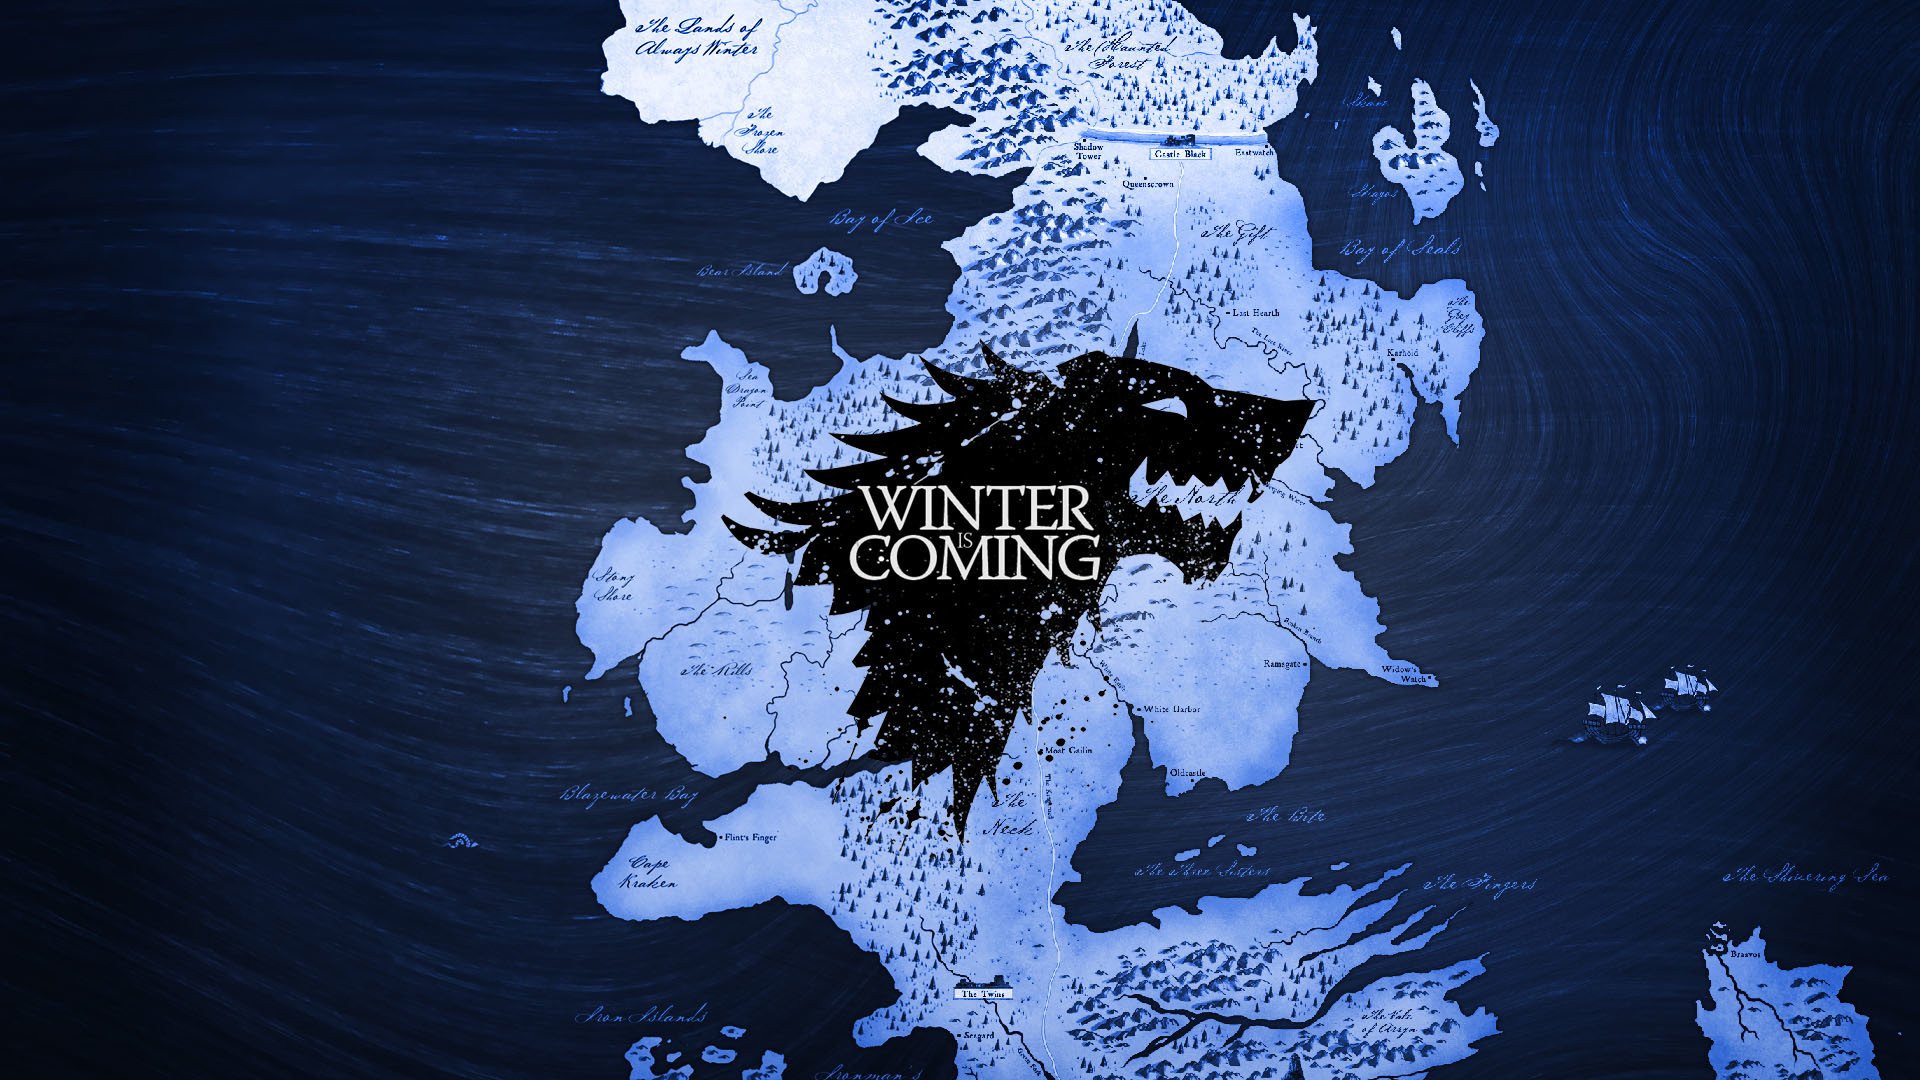 Game Of Thrones Wallpaper Winter Is Coming HD Image Wallpaper